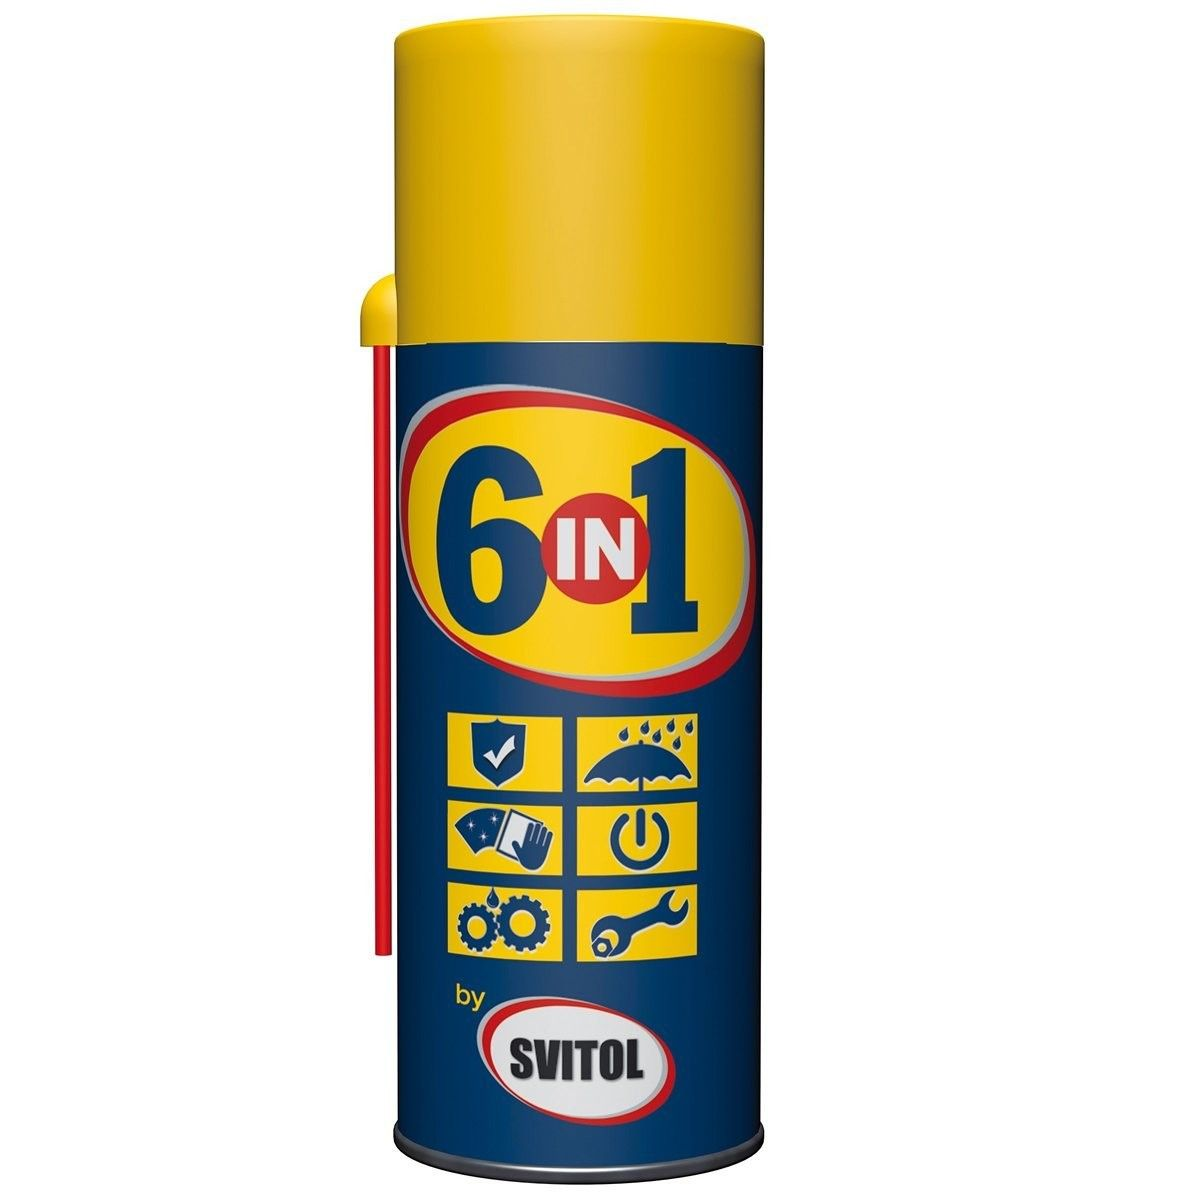 Spray Arexons 6 in 1